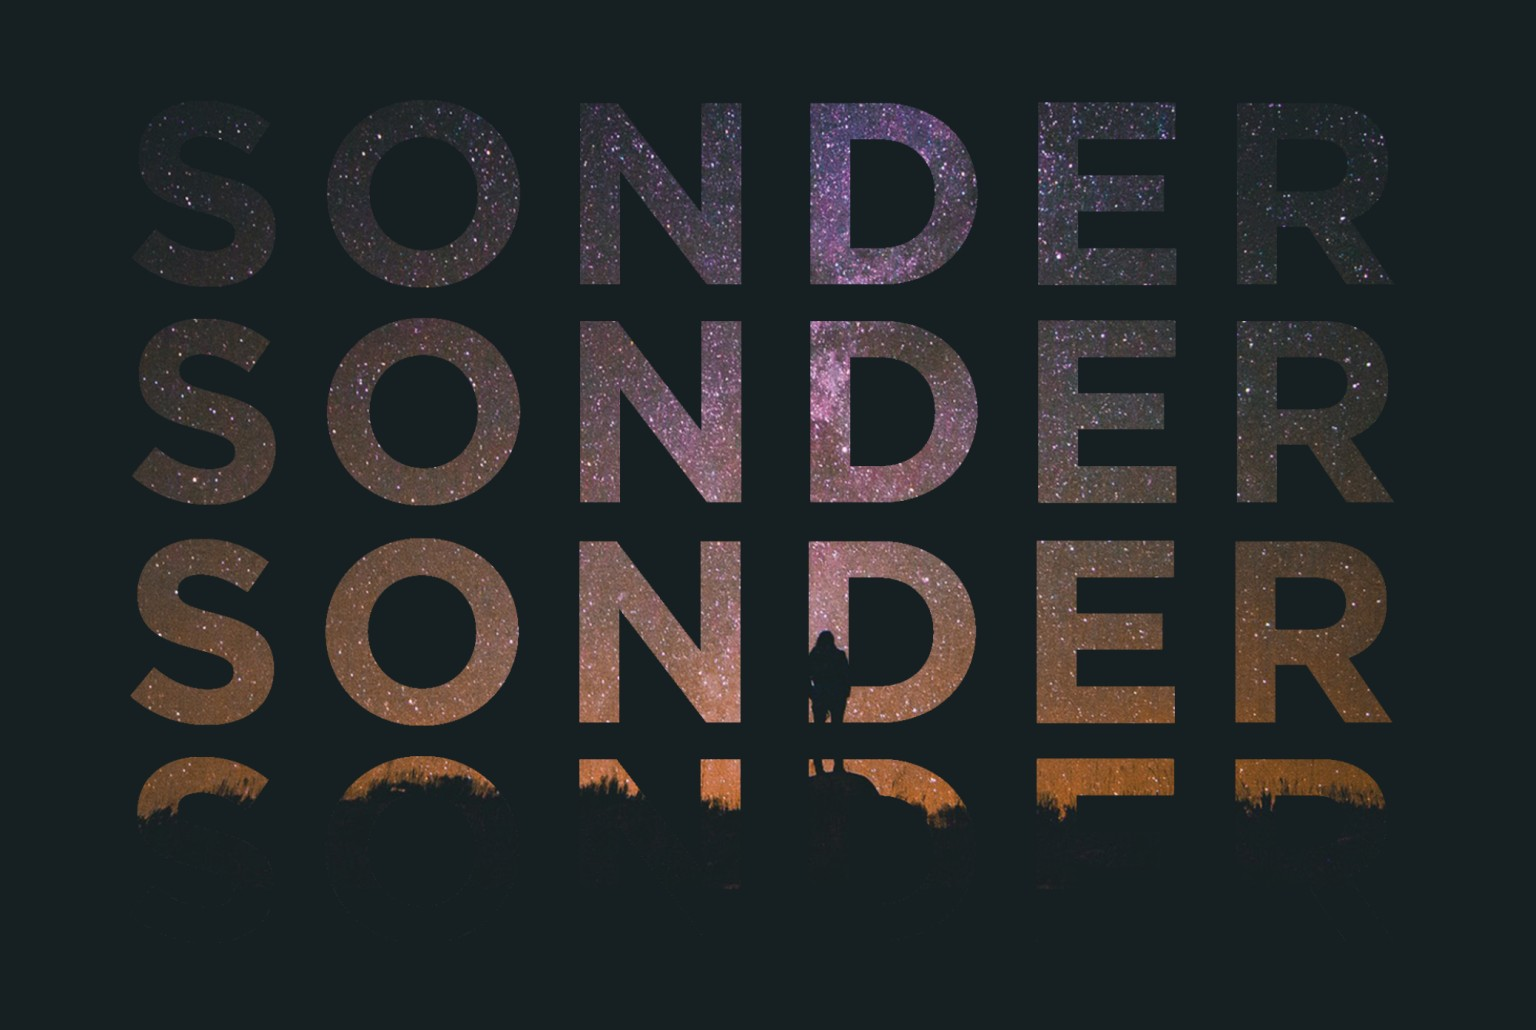 Sonder: An evening of connection